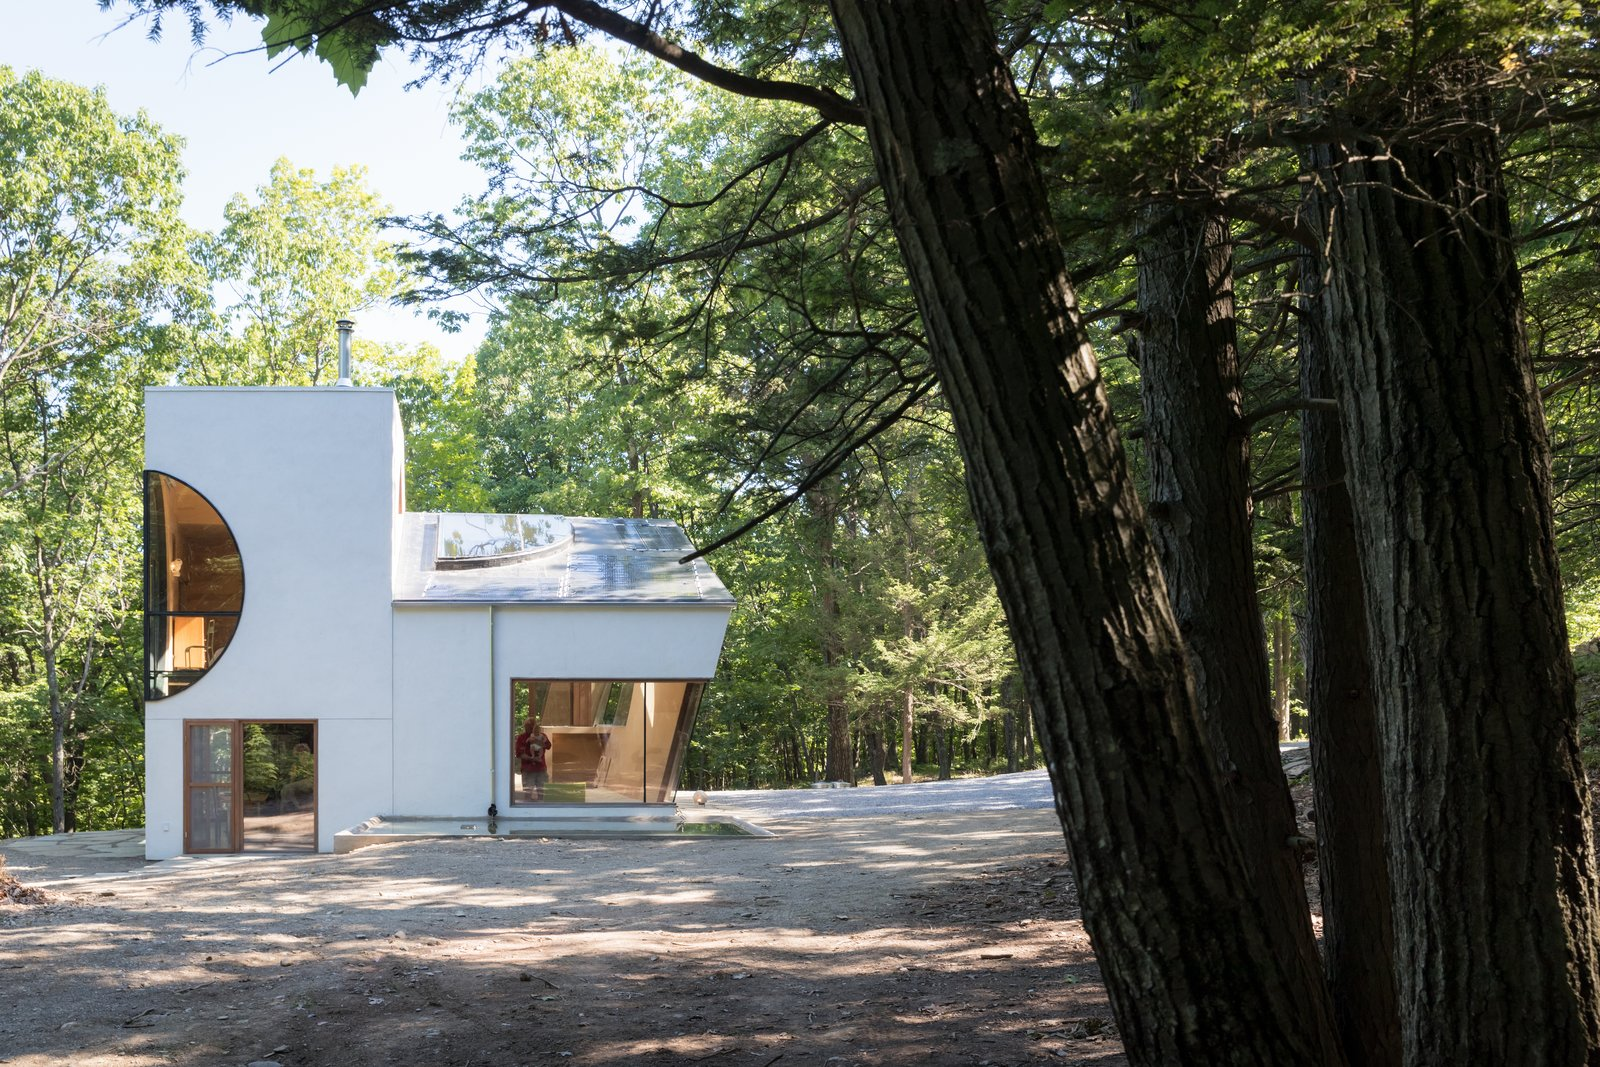 The Compact, Solar-Powered Ex of In House Sits Lightly Upon the Land